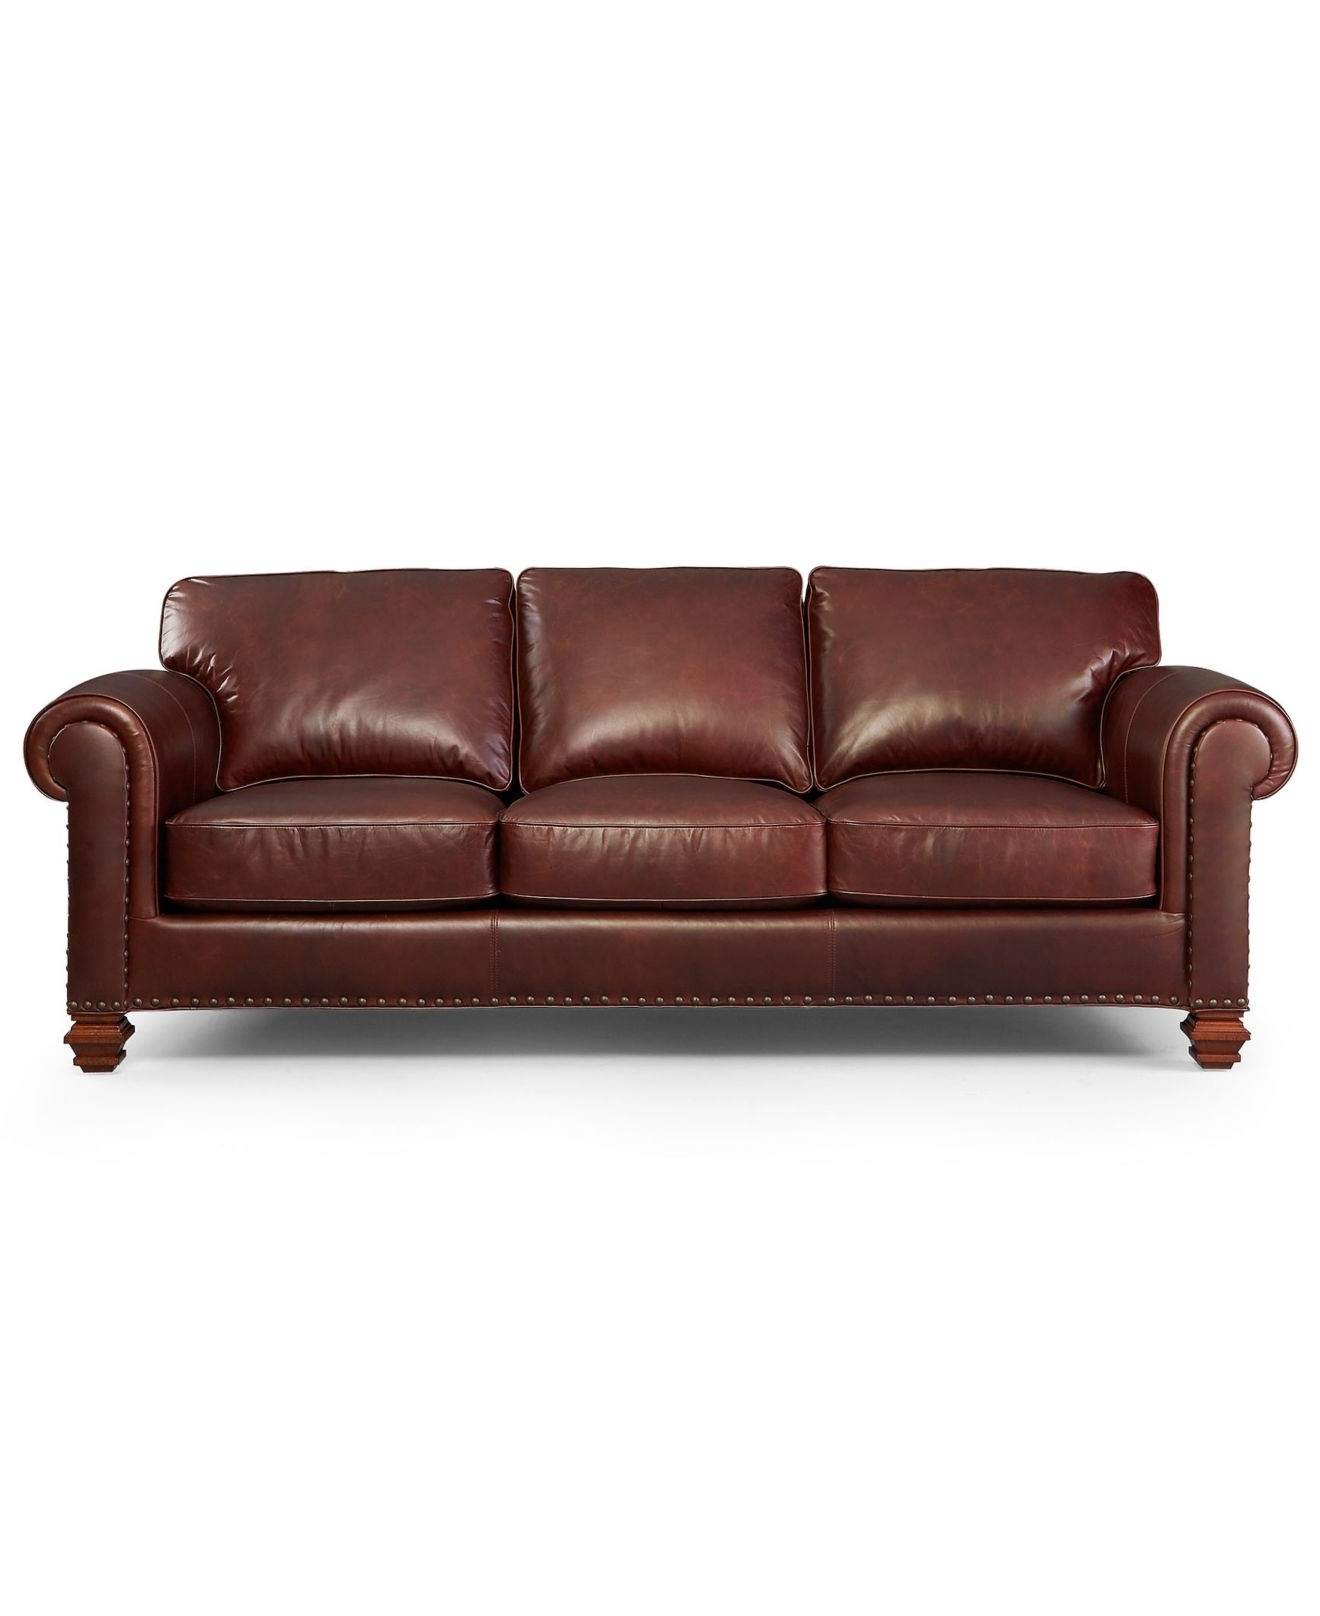 Lauren Ralph Lauren Leather Sofa, Stanmore – Living Room Furniture Throughout Widely Used Macys Leather Sofas (View 5 of 15)